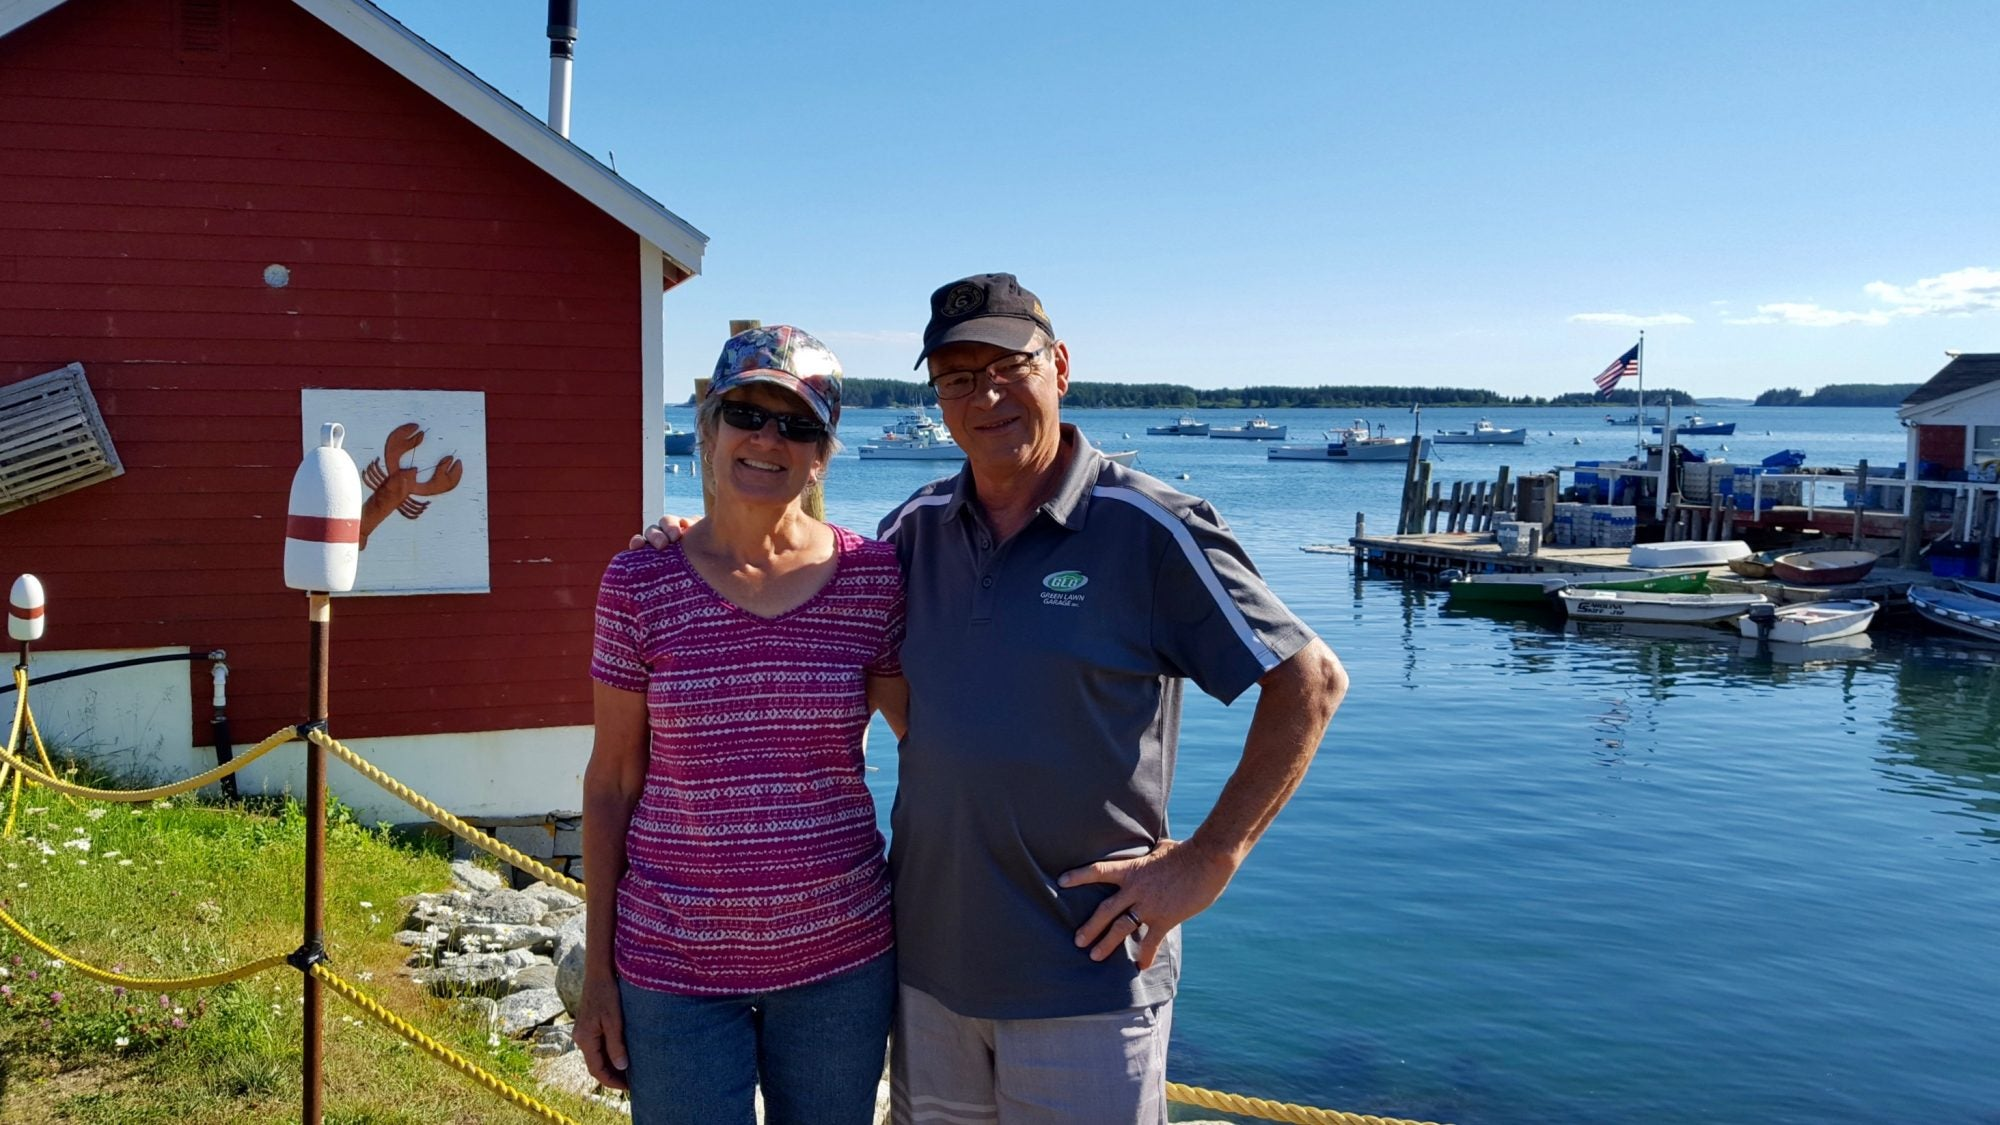 Image of older couple standing next to a small harbor in Maine